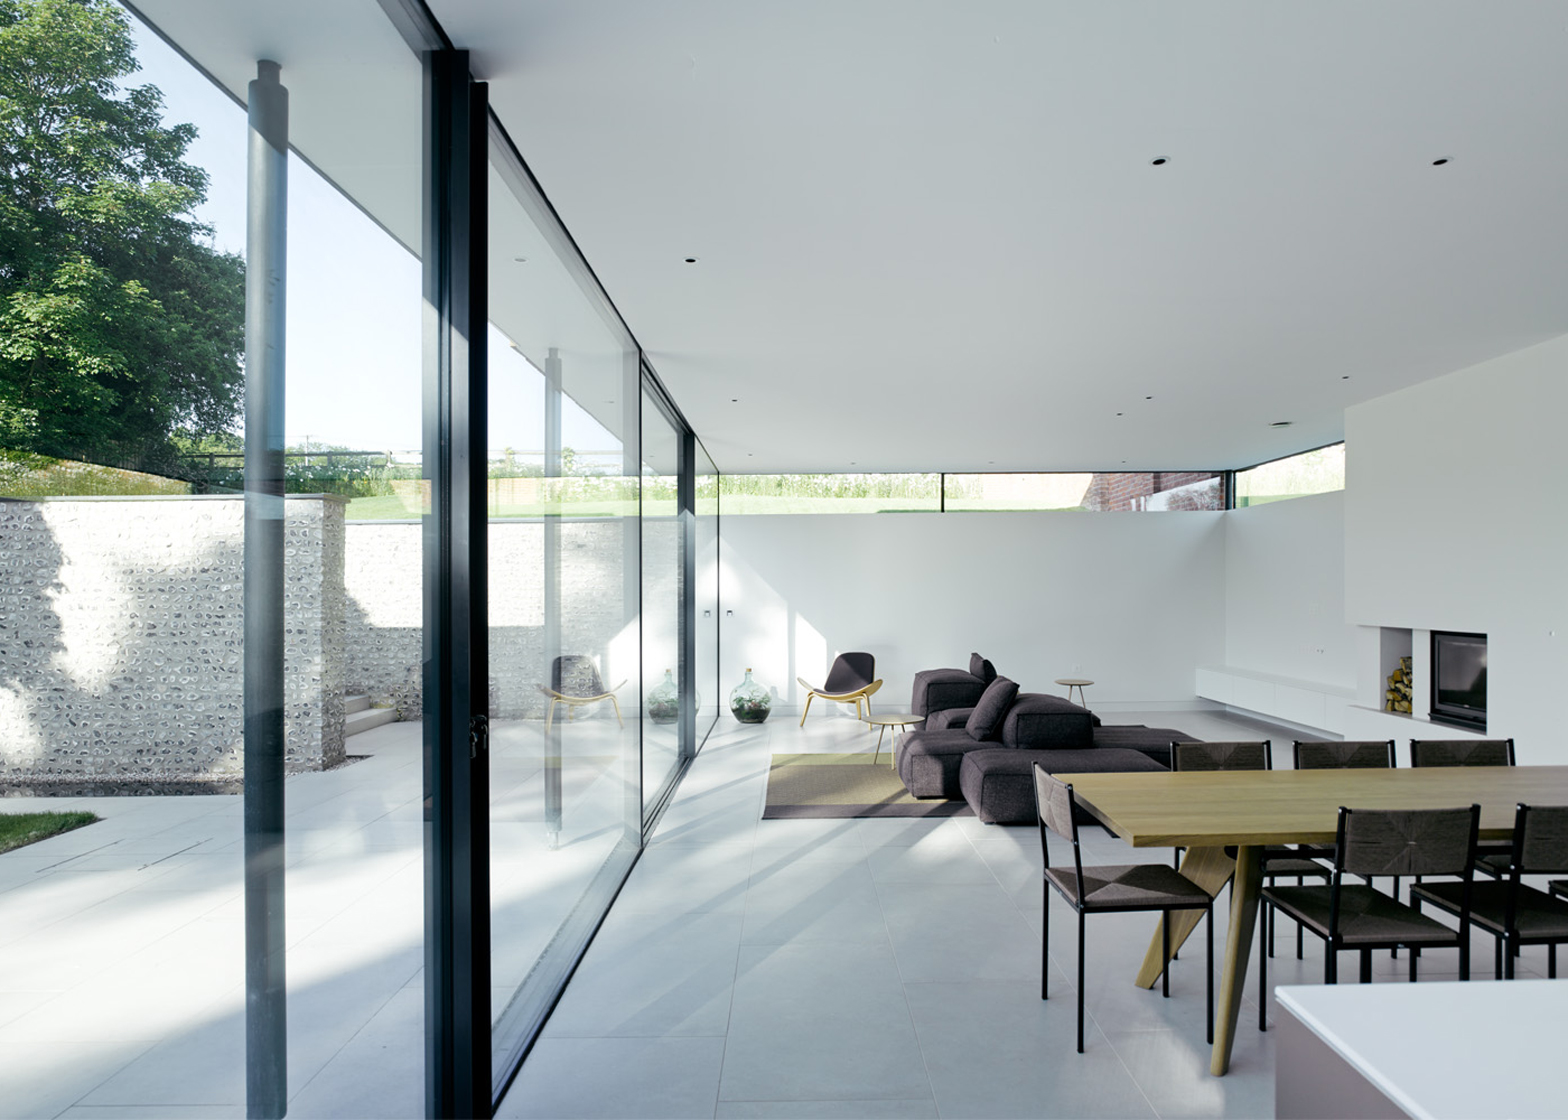 The Cheeran House; Reading, Berkshire, England, by John Pardey Architects